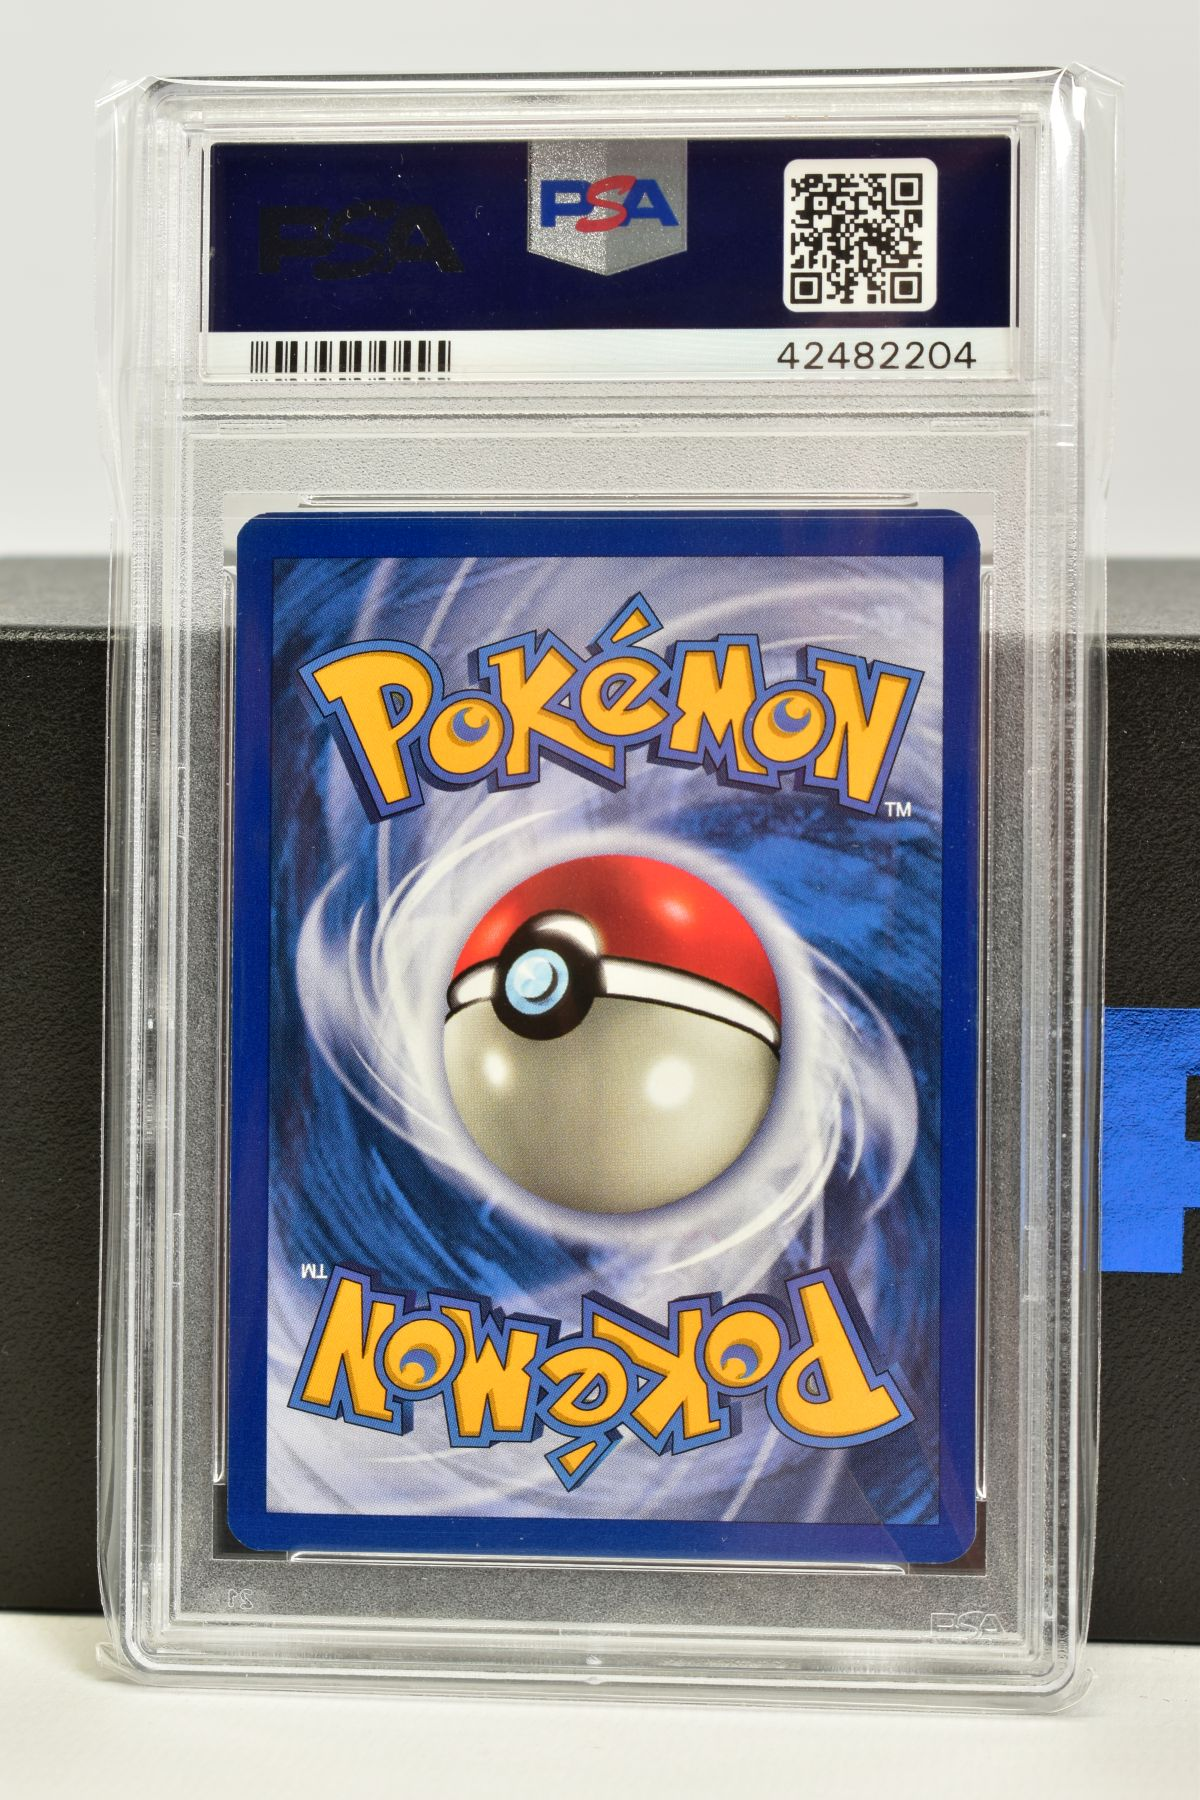 A PSA GRADED POKEMON 1ST EDITION FOSSIL SET MOLTRES HOLO CARD, (12/62), graded GEM MINT 10 and - Image 2 of 2